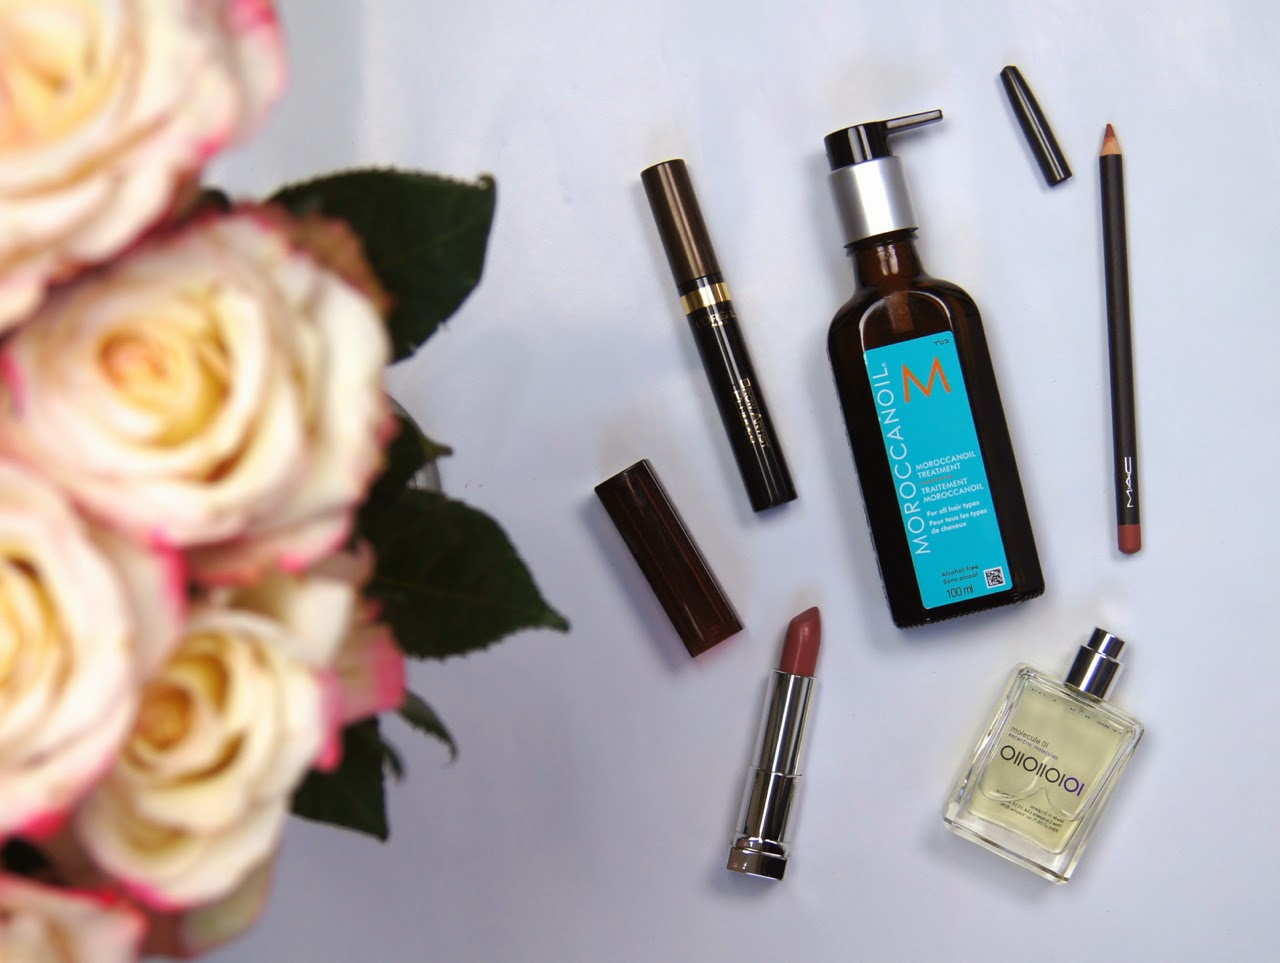 beauty favourites review swatches moroccan oil treatment eccentric molecules fragrance mac lipliner l'oreal brow tinted gel maybelline lipstick